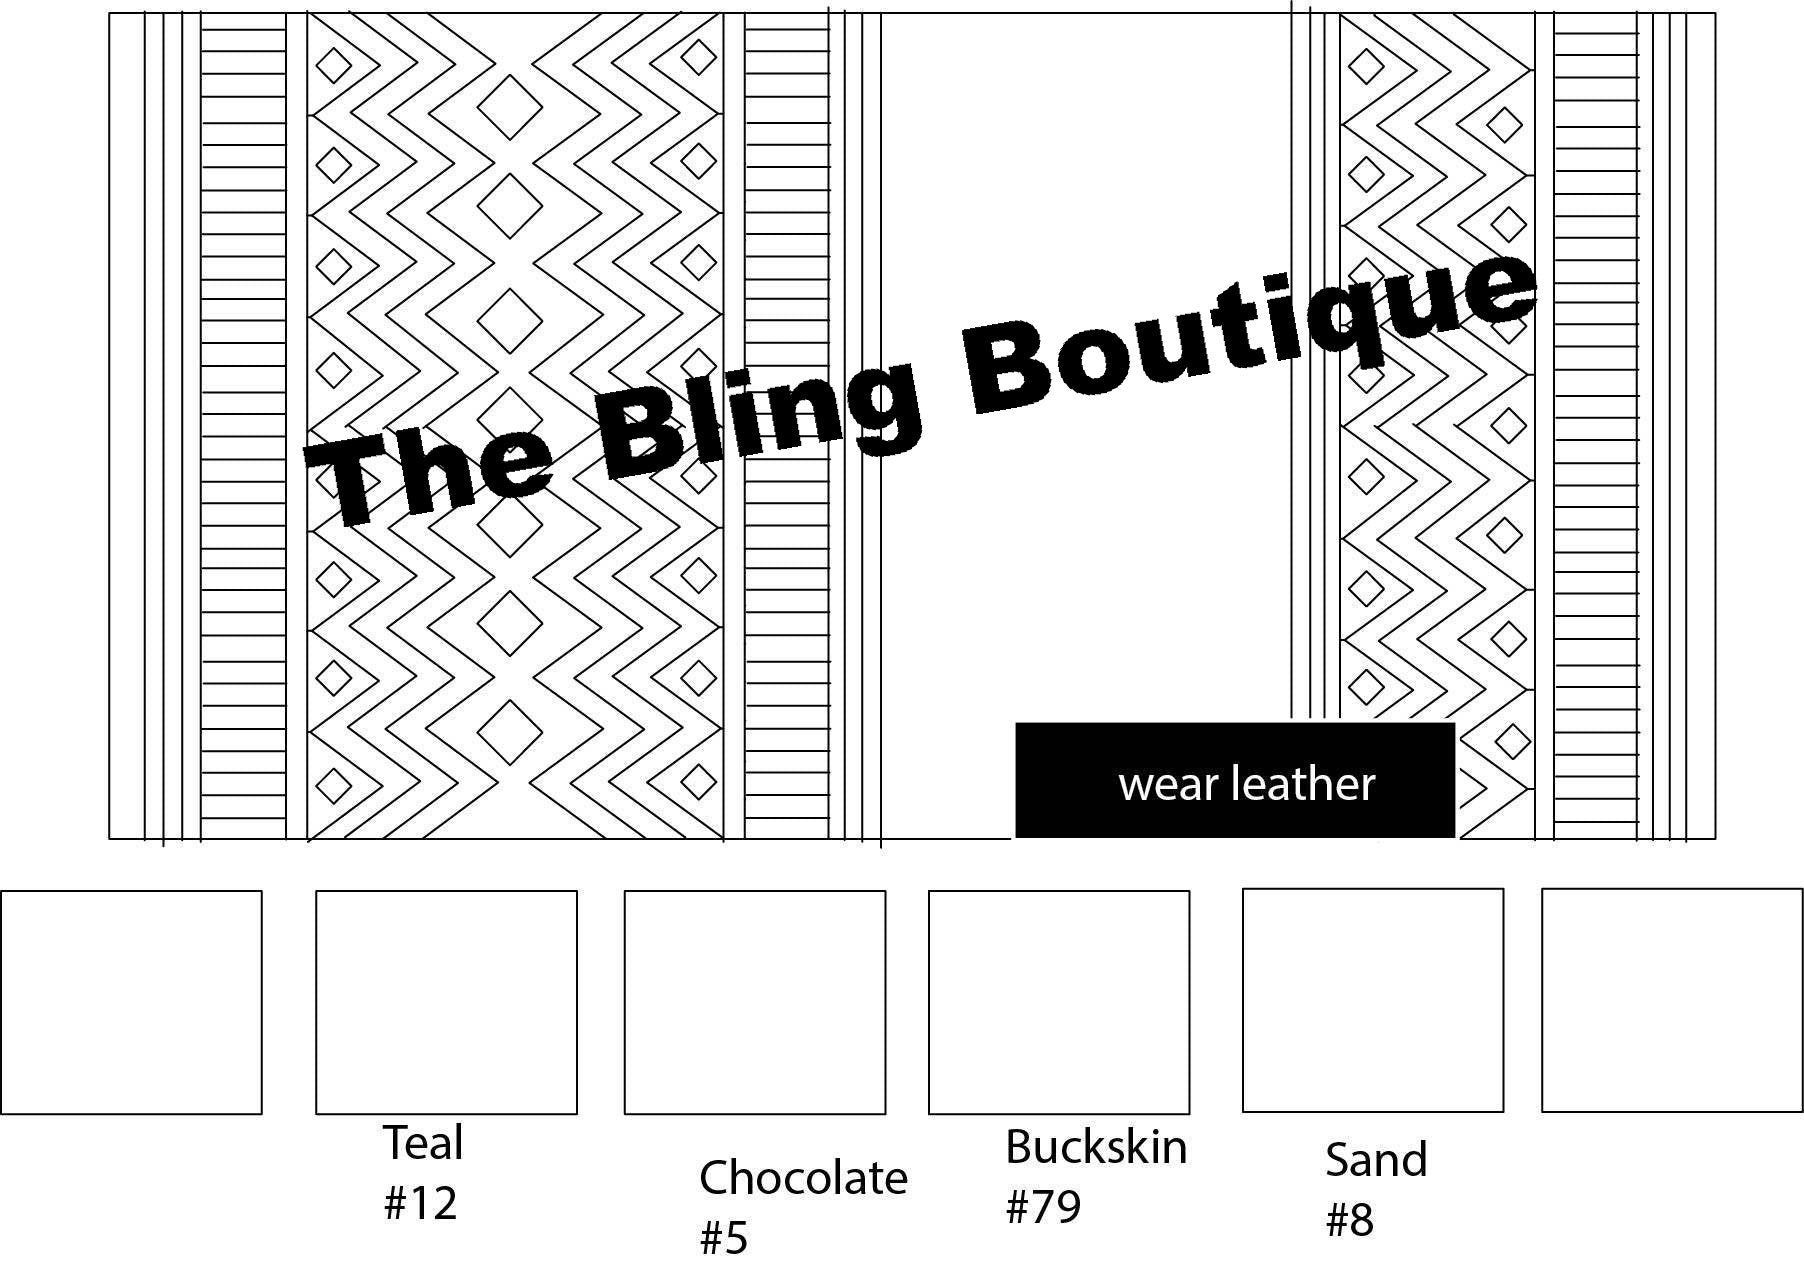 Custom Bling Boutique Show Pad - Design #9